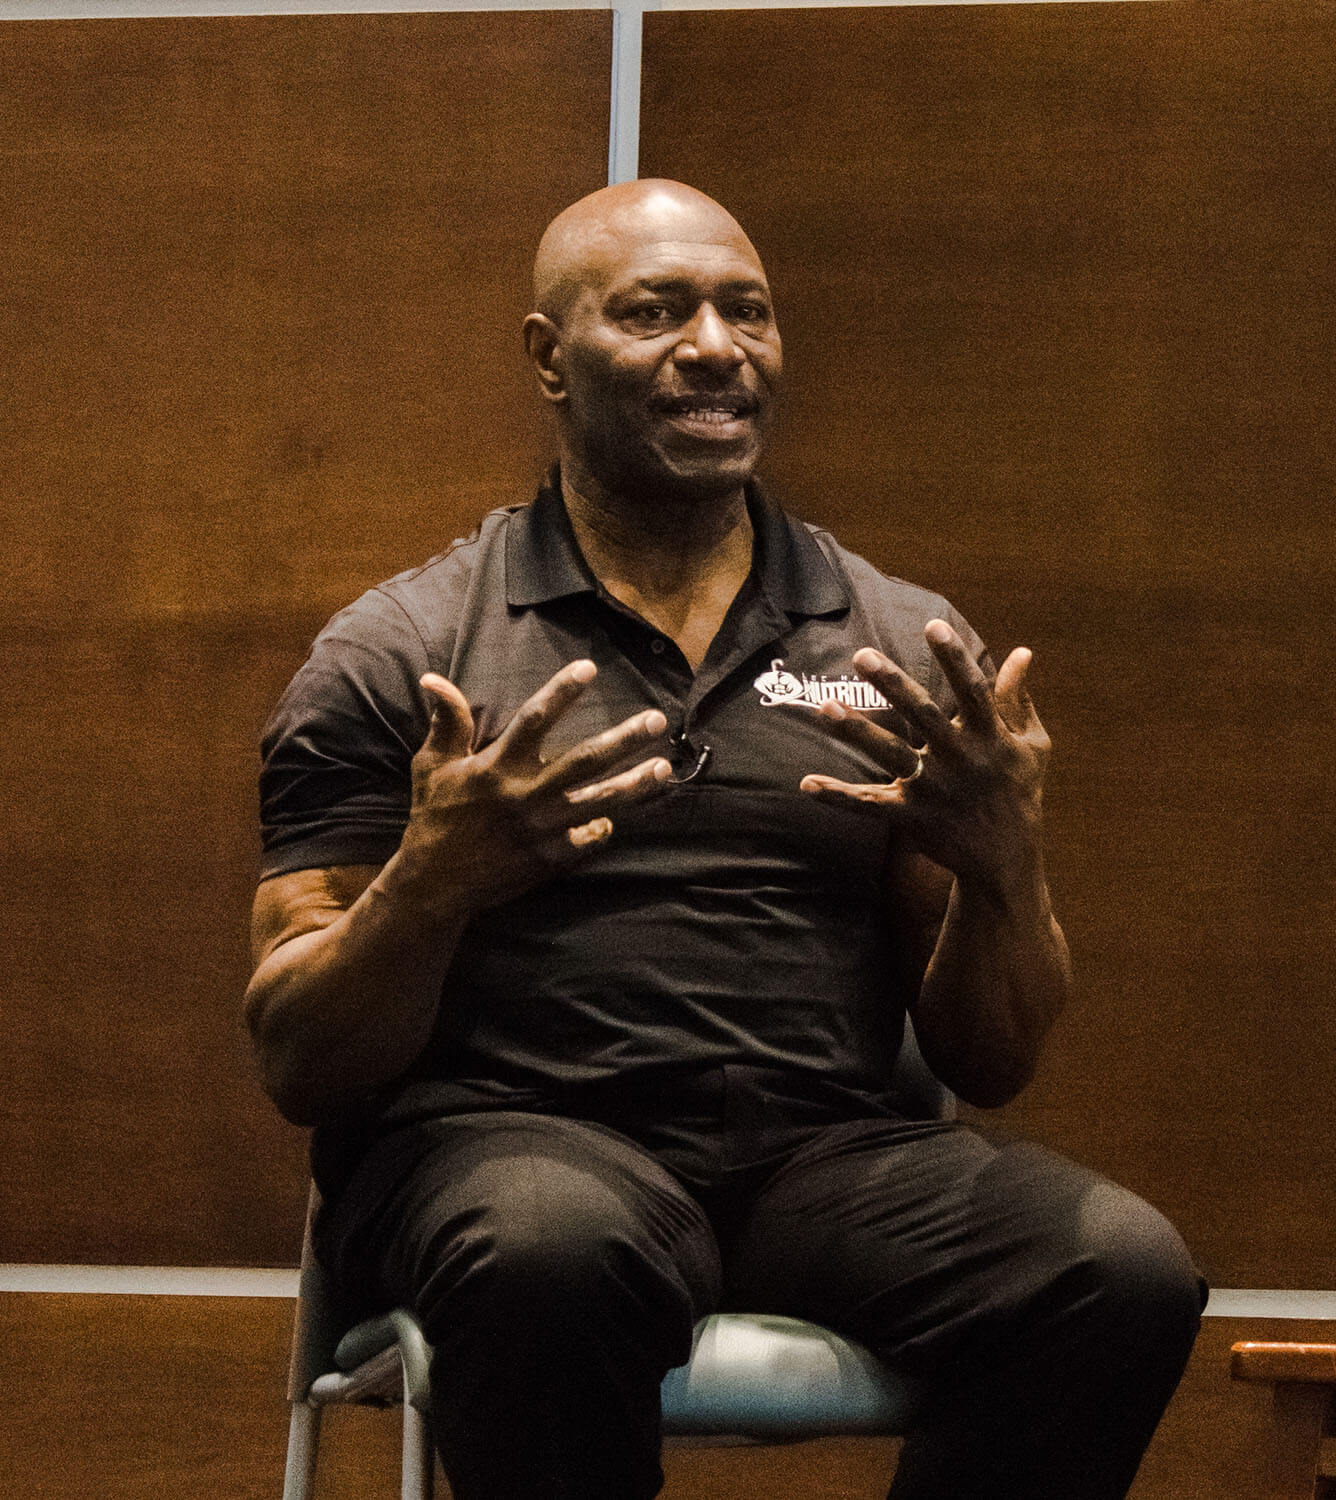 8-Time Mr. Olympia Lee Haney Visits CCM